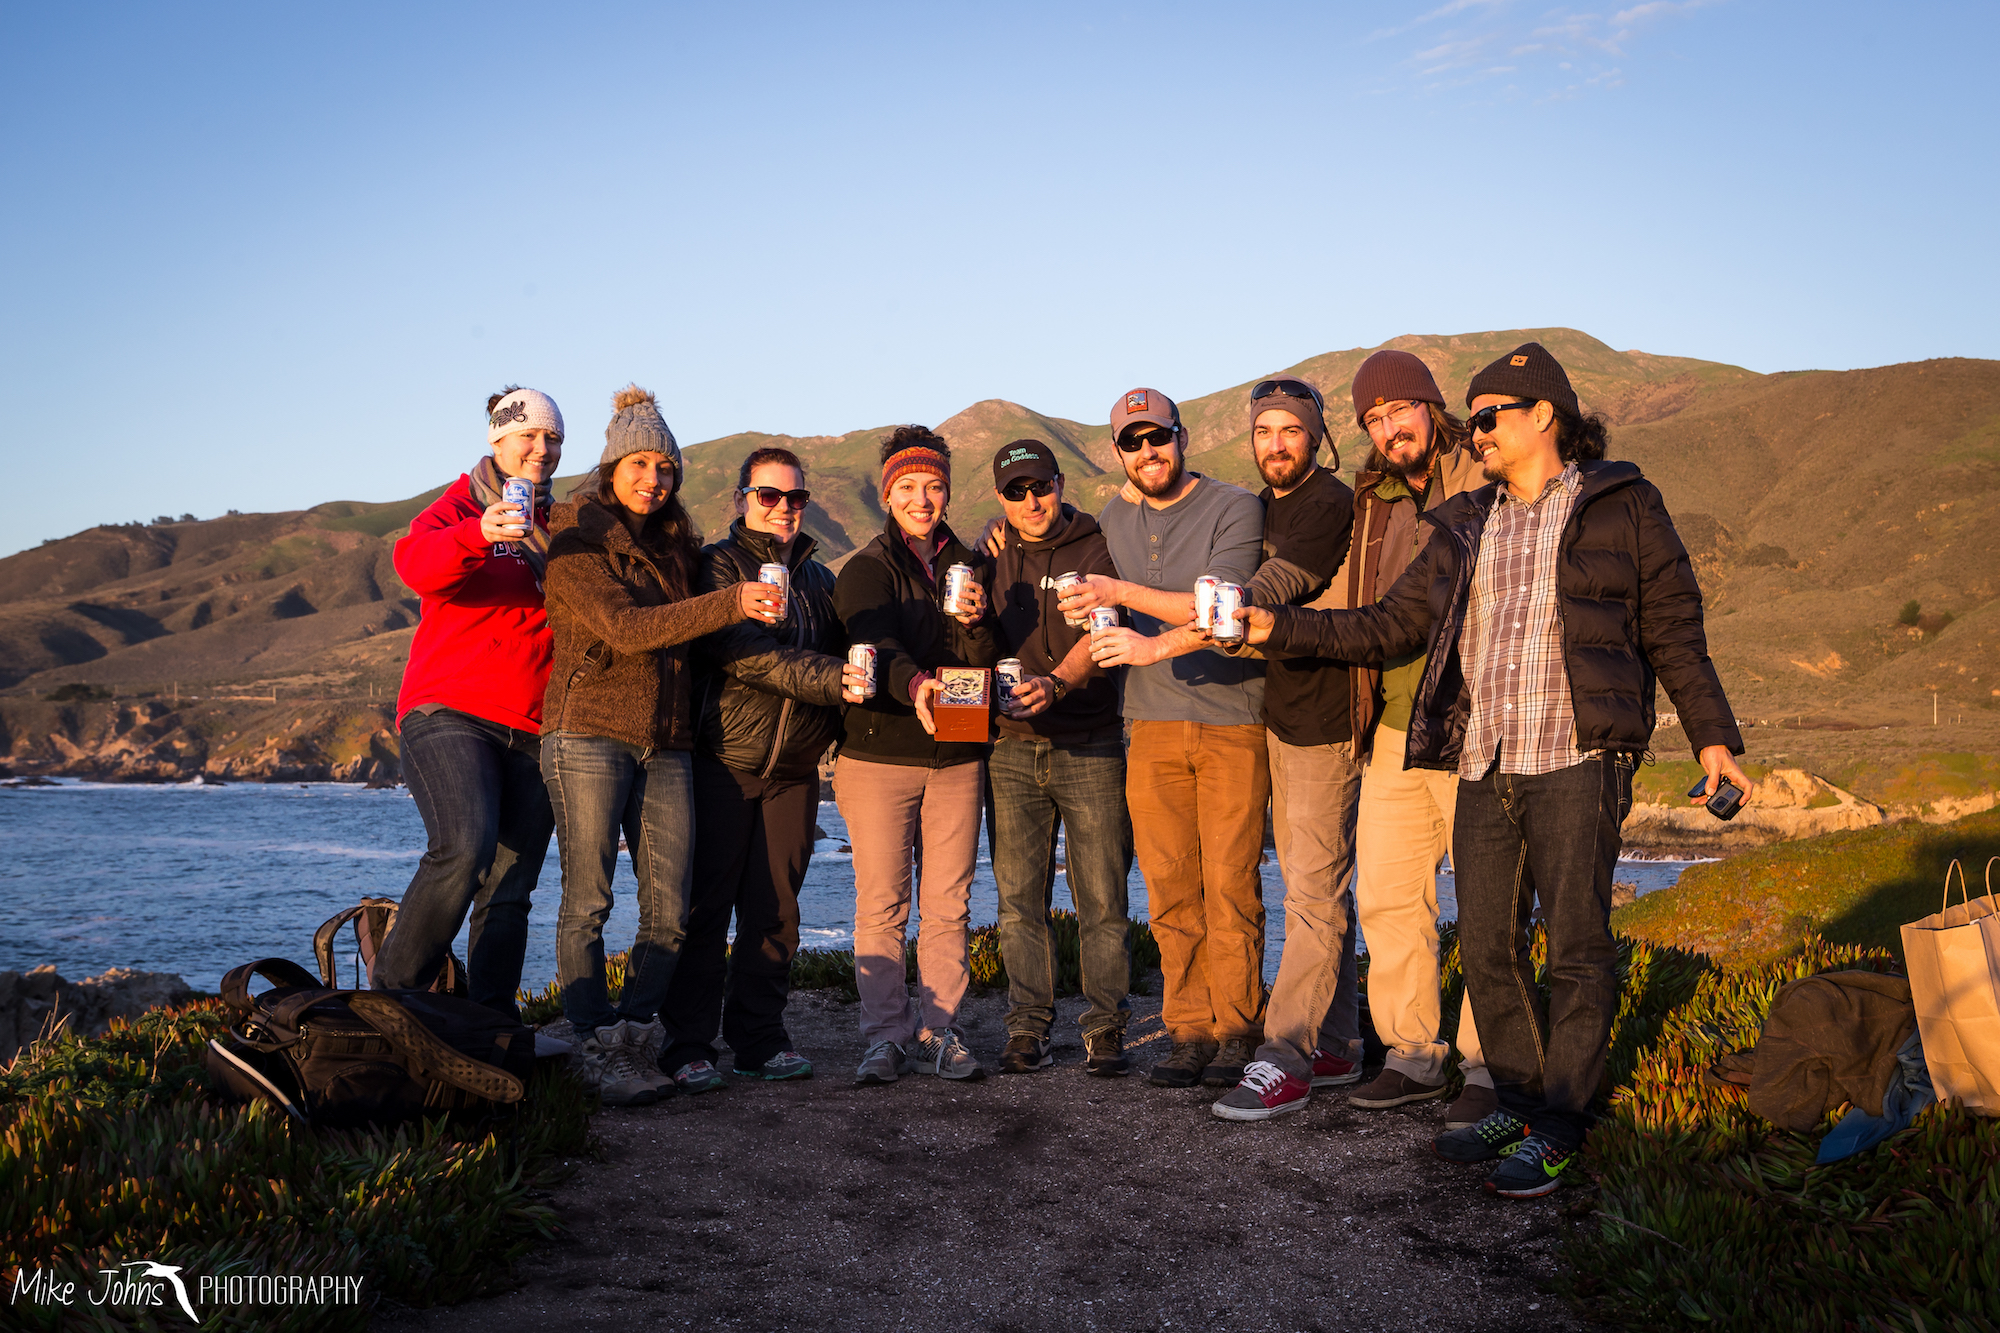 Sunset scattering of Reefer dog at Soberanes Point, Big Sur. From left to right: Denise, Lydia, Renee, Rachel, Reef (in the box), Alex, Casey, Mike, Carl, Louie.